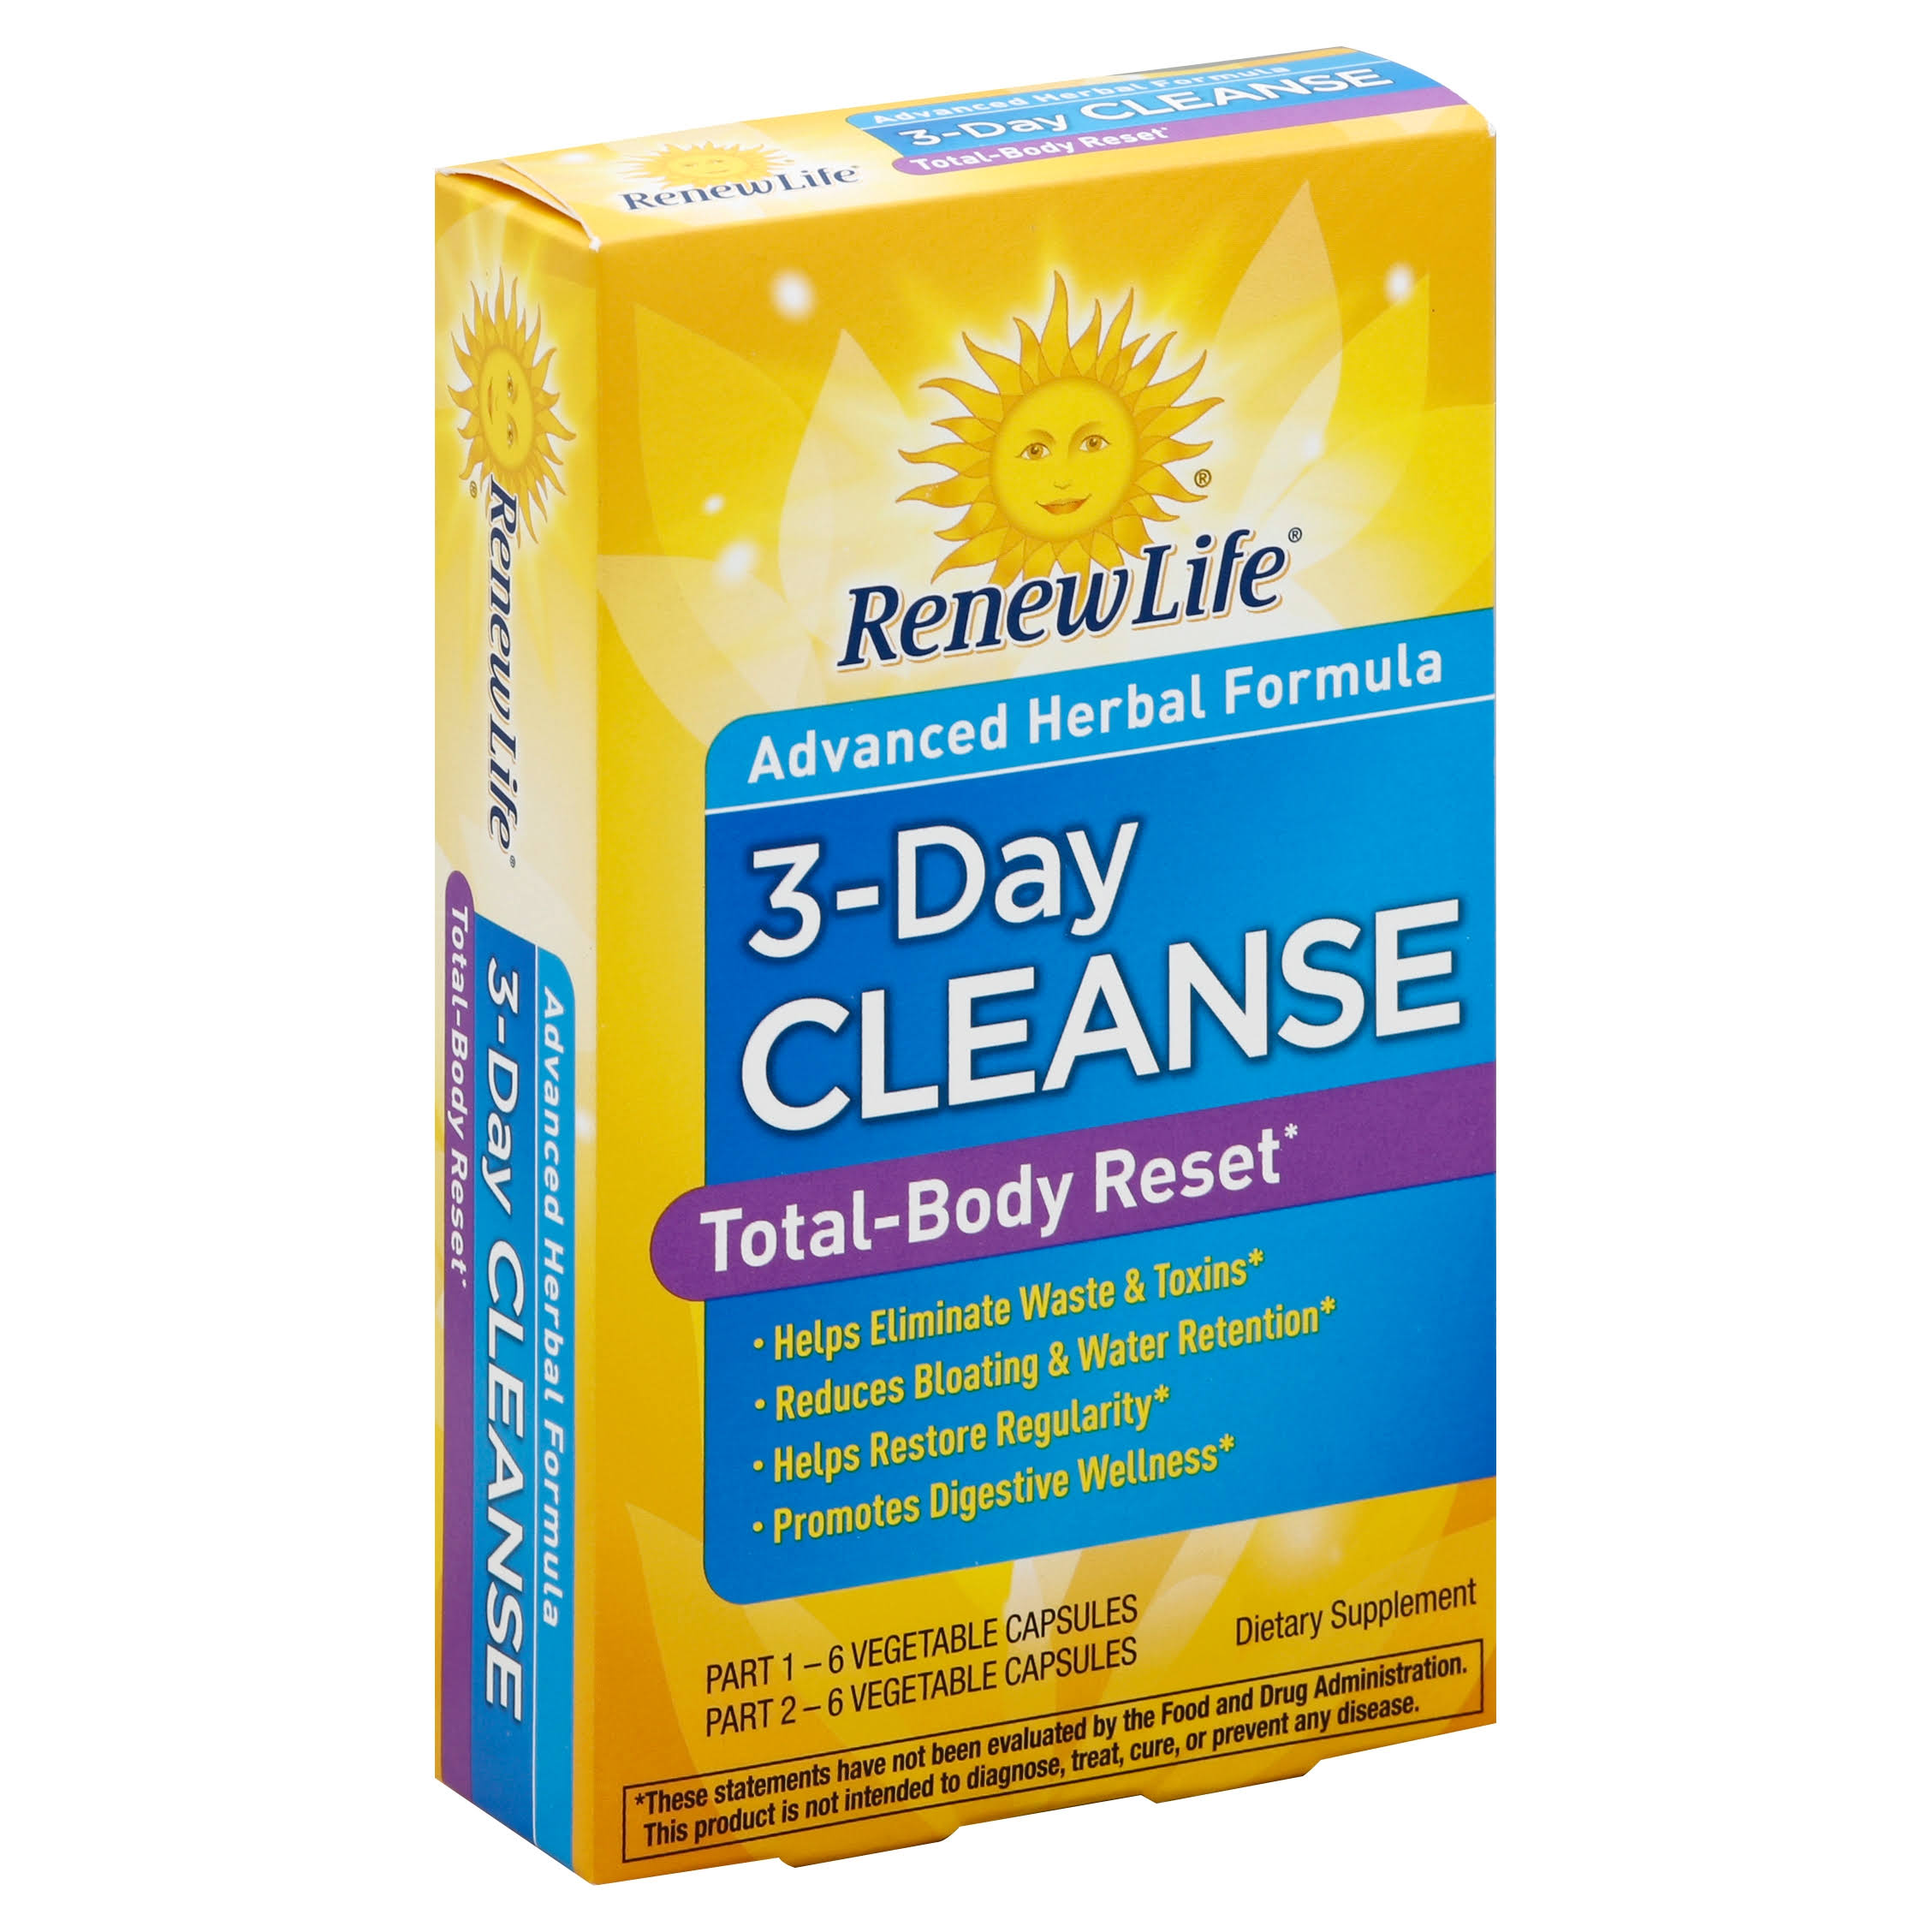 Renew Life Total Body Reset Digestive detox and Cleanse Supplement - 3 Day Program